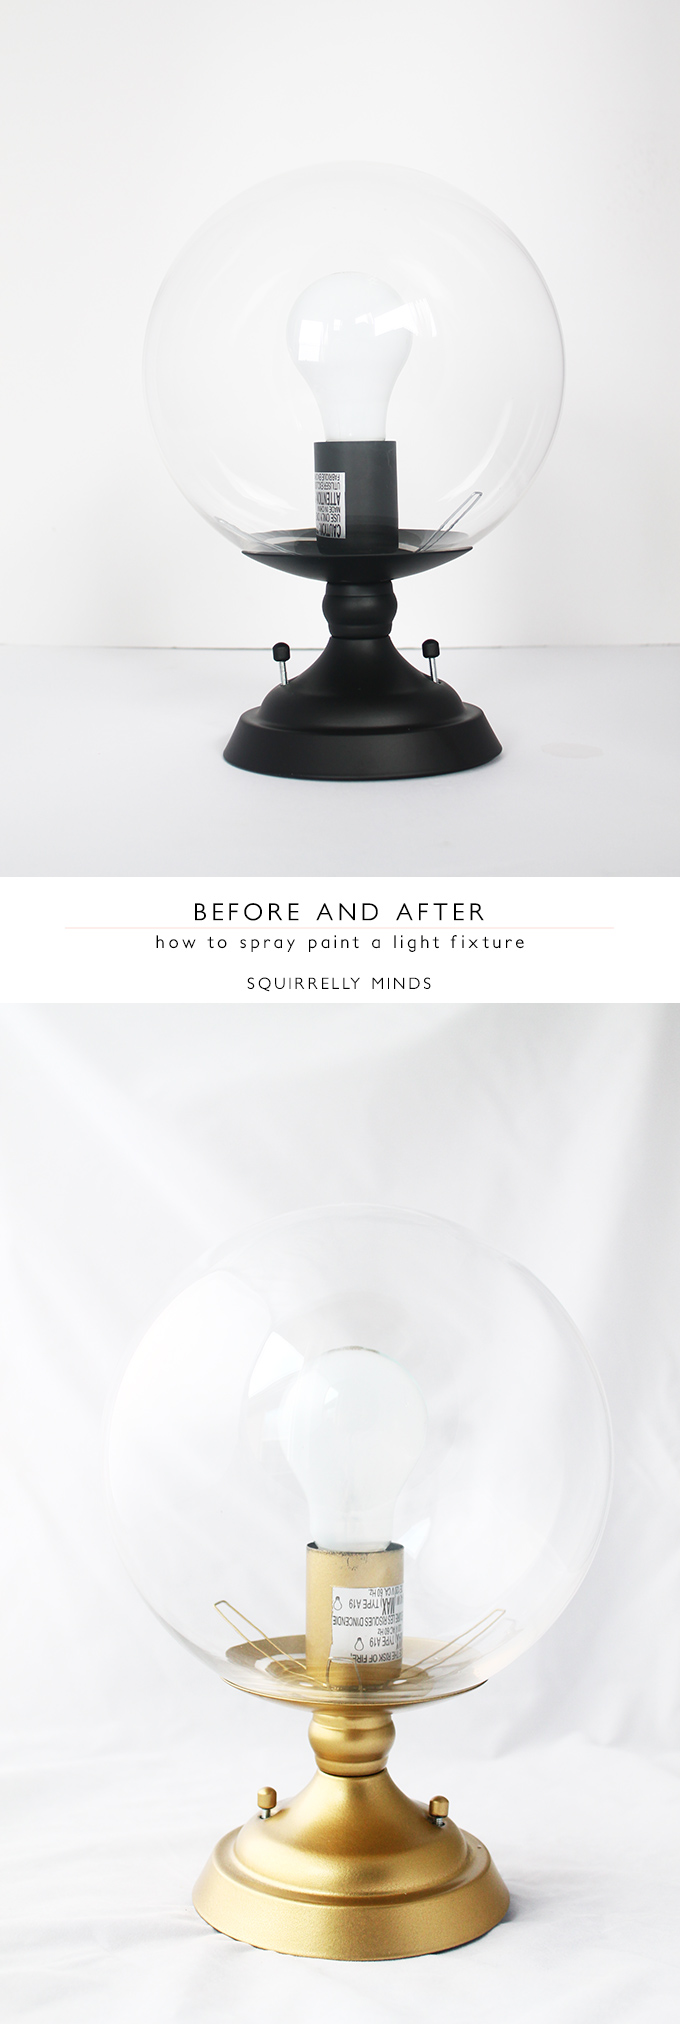 How to Spray Paint a Light Fixture | Squirrelly Minds